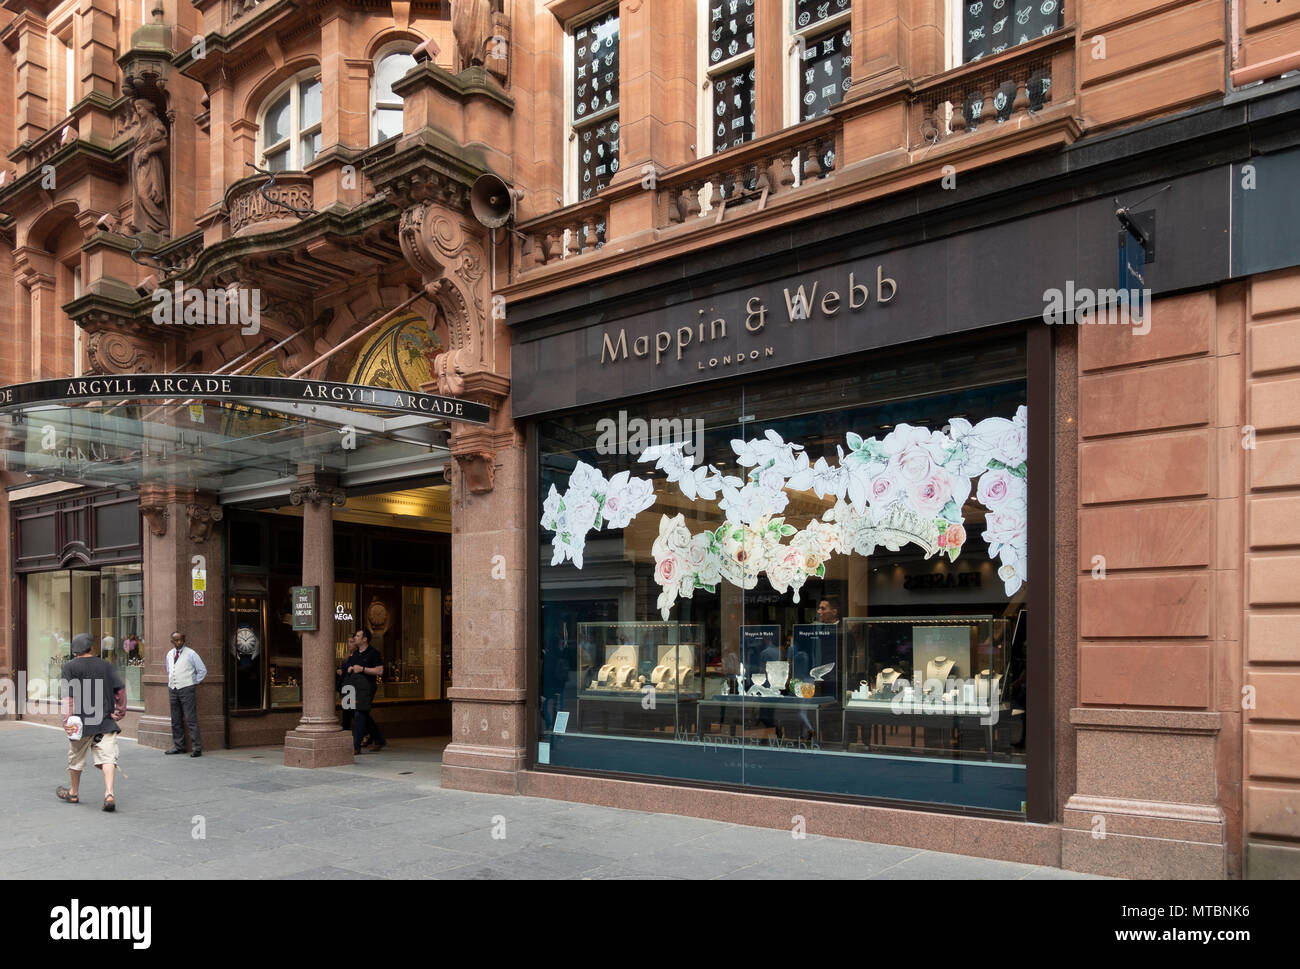 Mappin and Webb, an upmarket jeweller's at the entrance of the Argyle Arcade in Buchanan Street, Glasgow, with Omega at the other side of the entrance - Stock Image